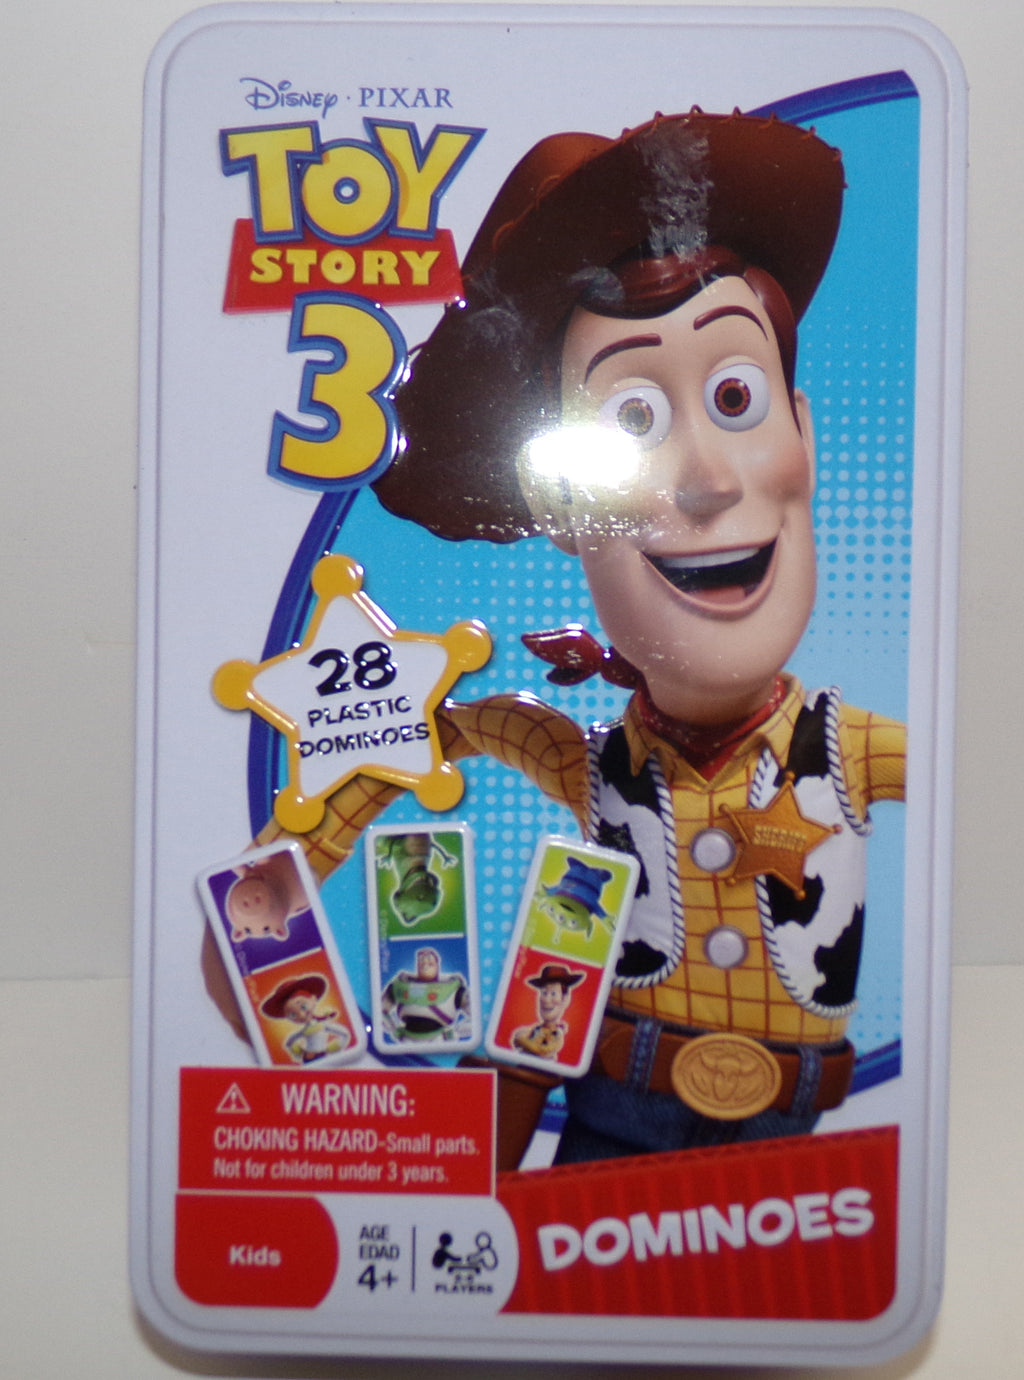 Disney Toy Story 3 Dominoes - We Got Character